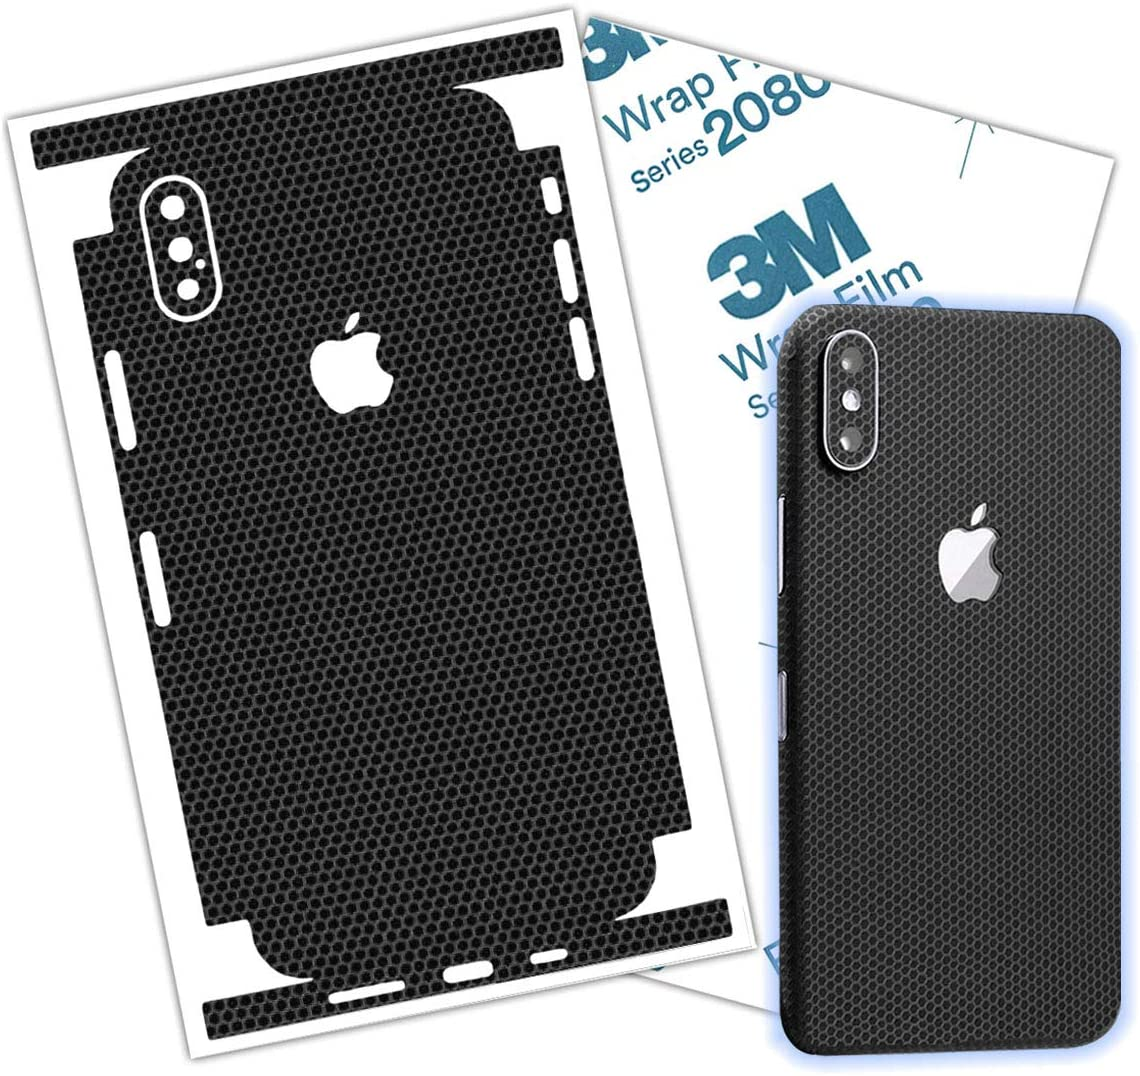 Black Matrix iPhone X, Xs, XR, XsMax, Skin Wrap Protective Around Borders and Back Elegant Thin 3D Skin Made with 3M 2080 Film (iPhone Xs)